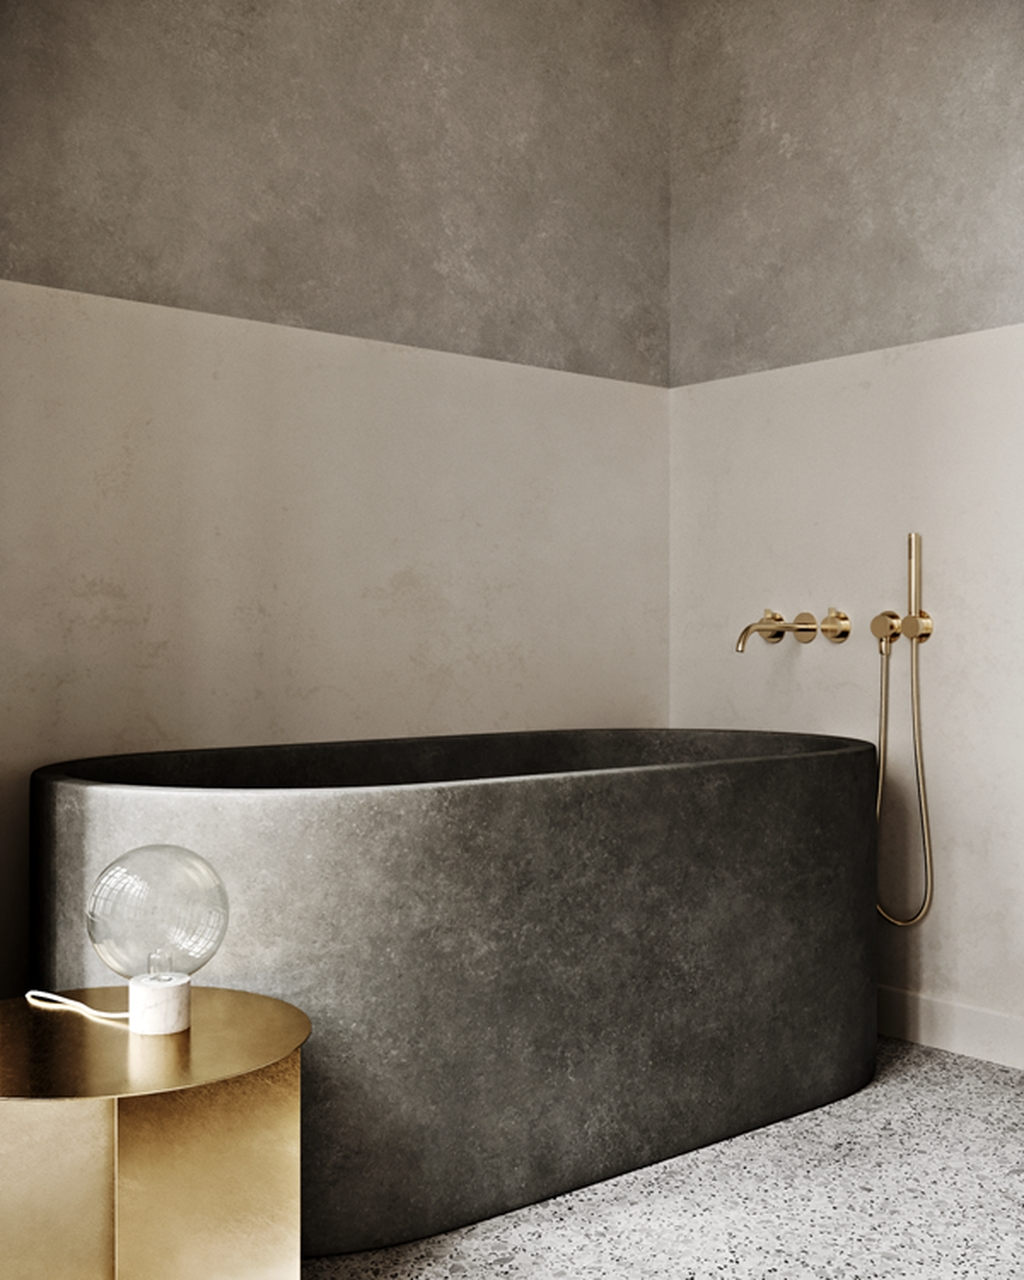 Captivating Bathtub Designs Ideas You Must See24